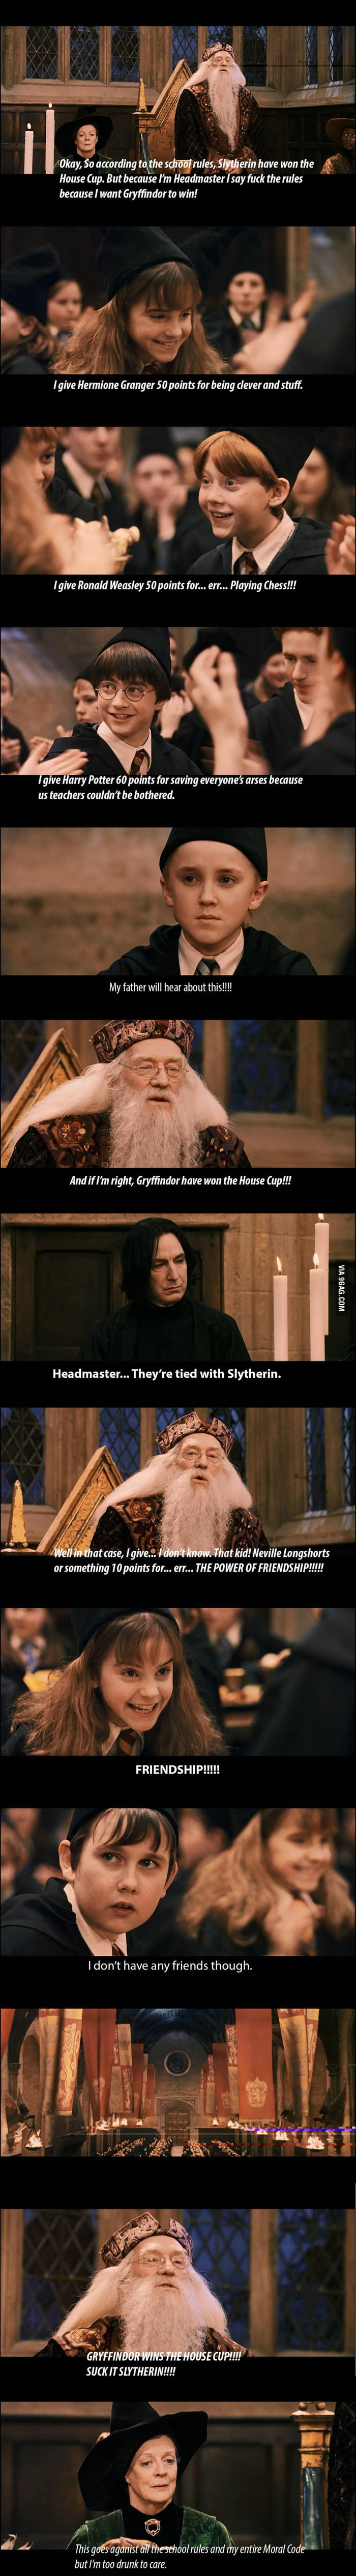 Dumbledore: Screwing Slytherin since 1997